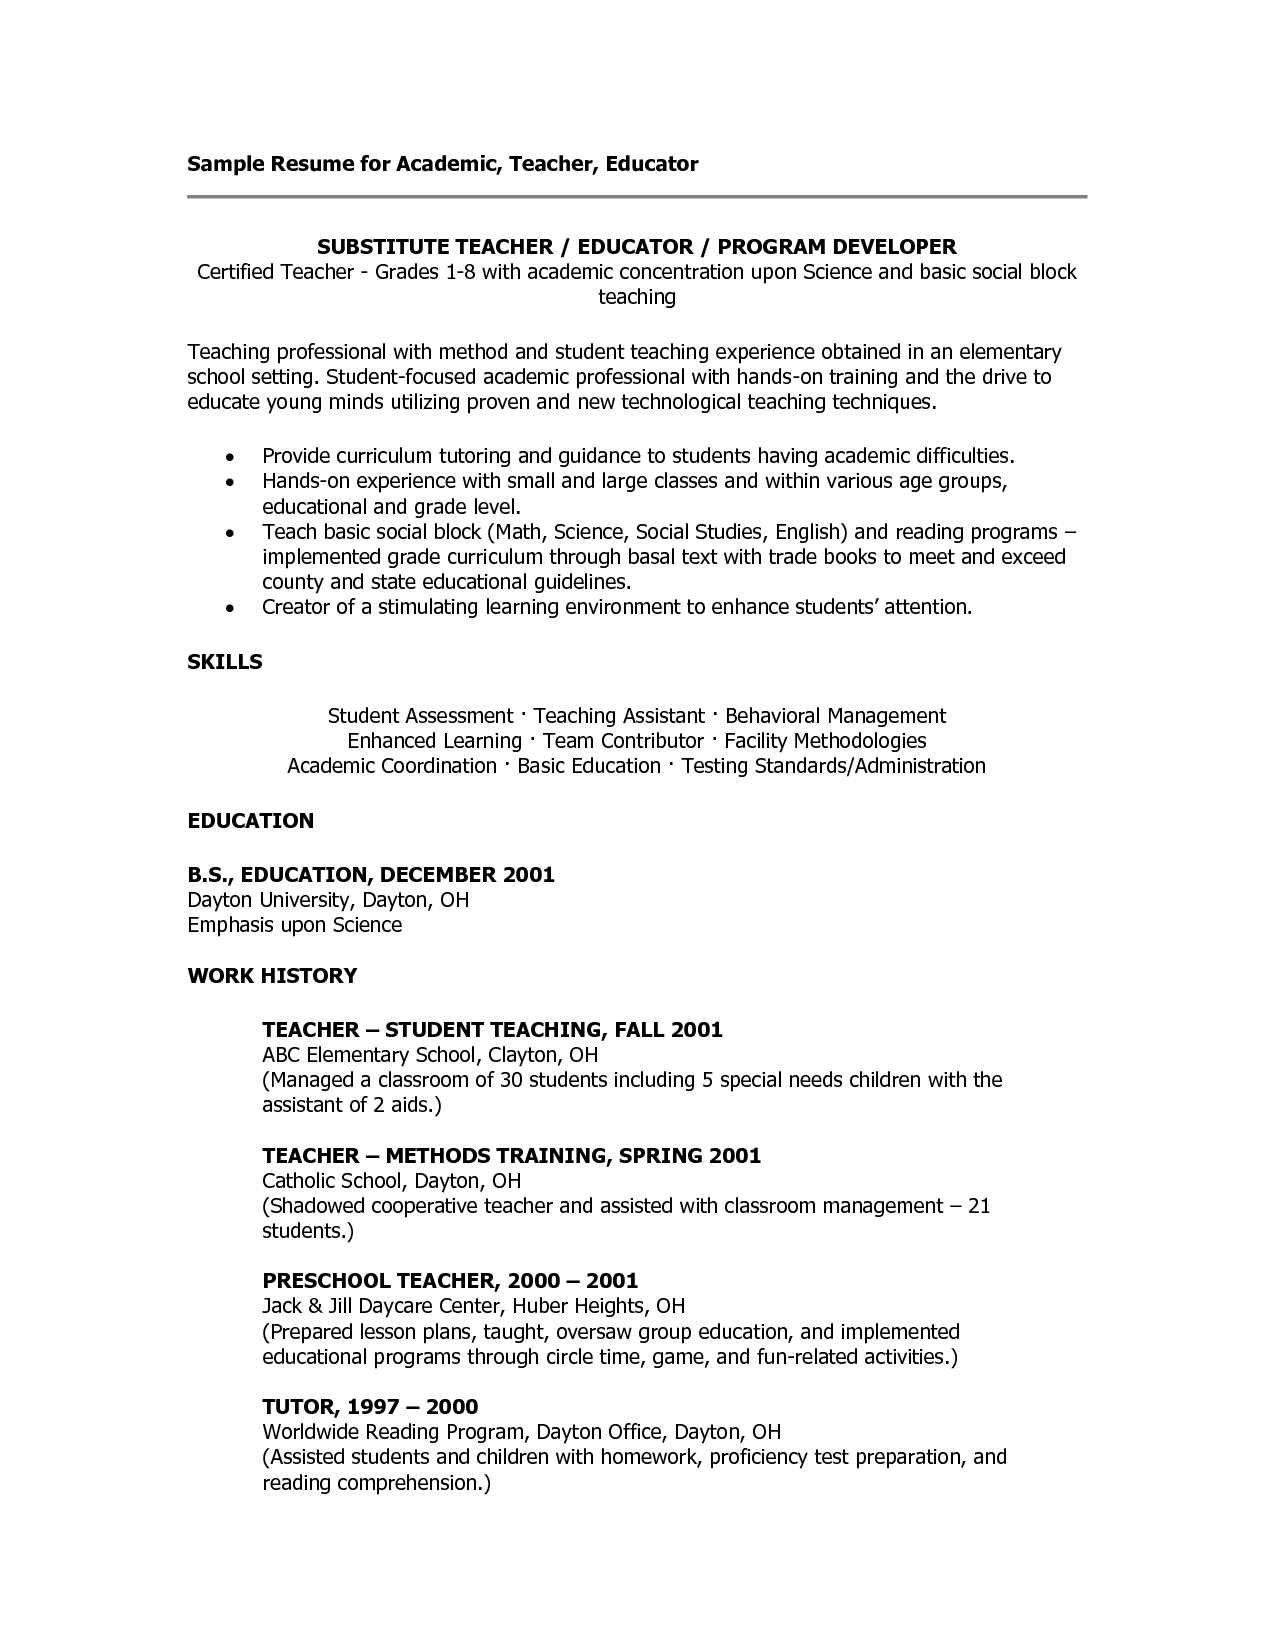 sample teacher resumes substitute teacher resume - Substitute Teaching Resume